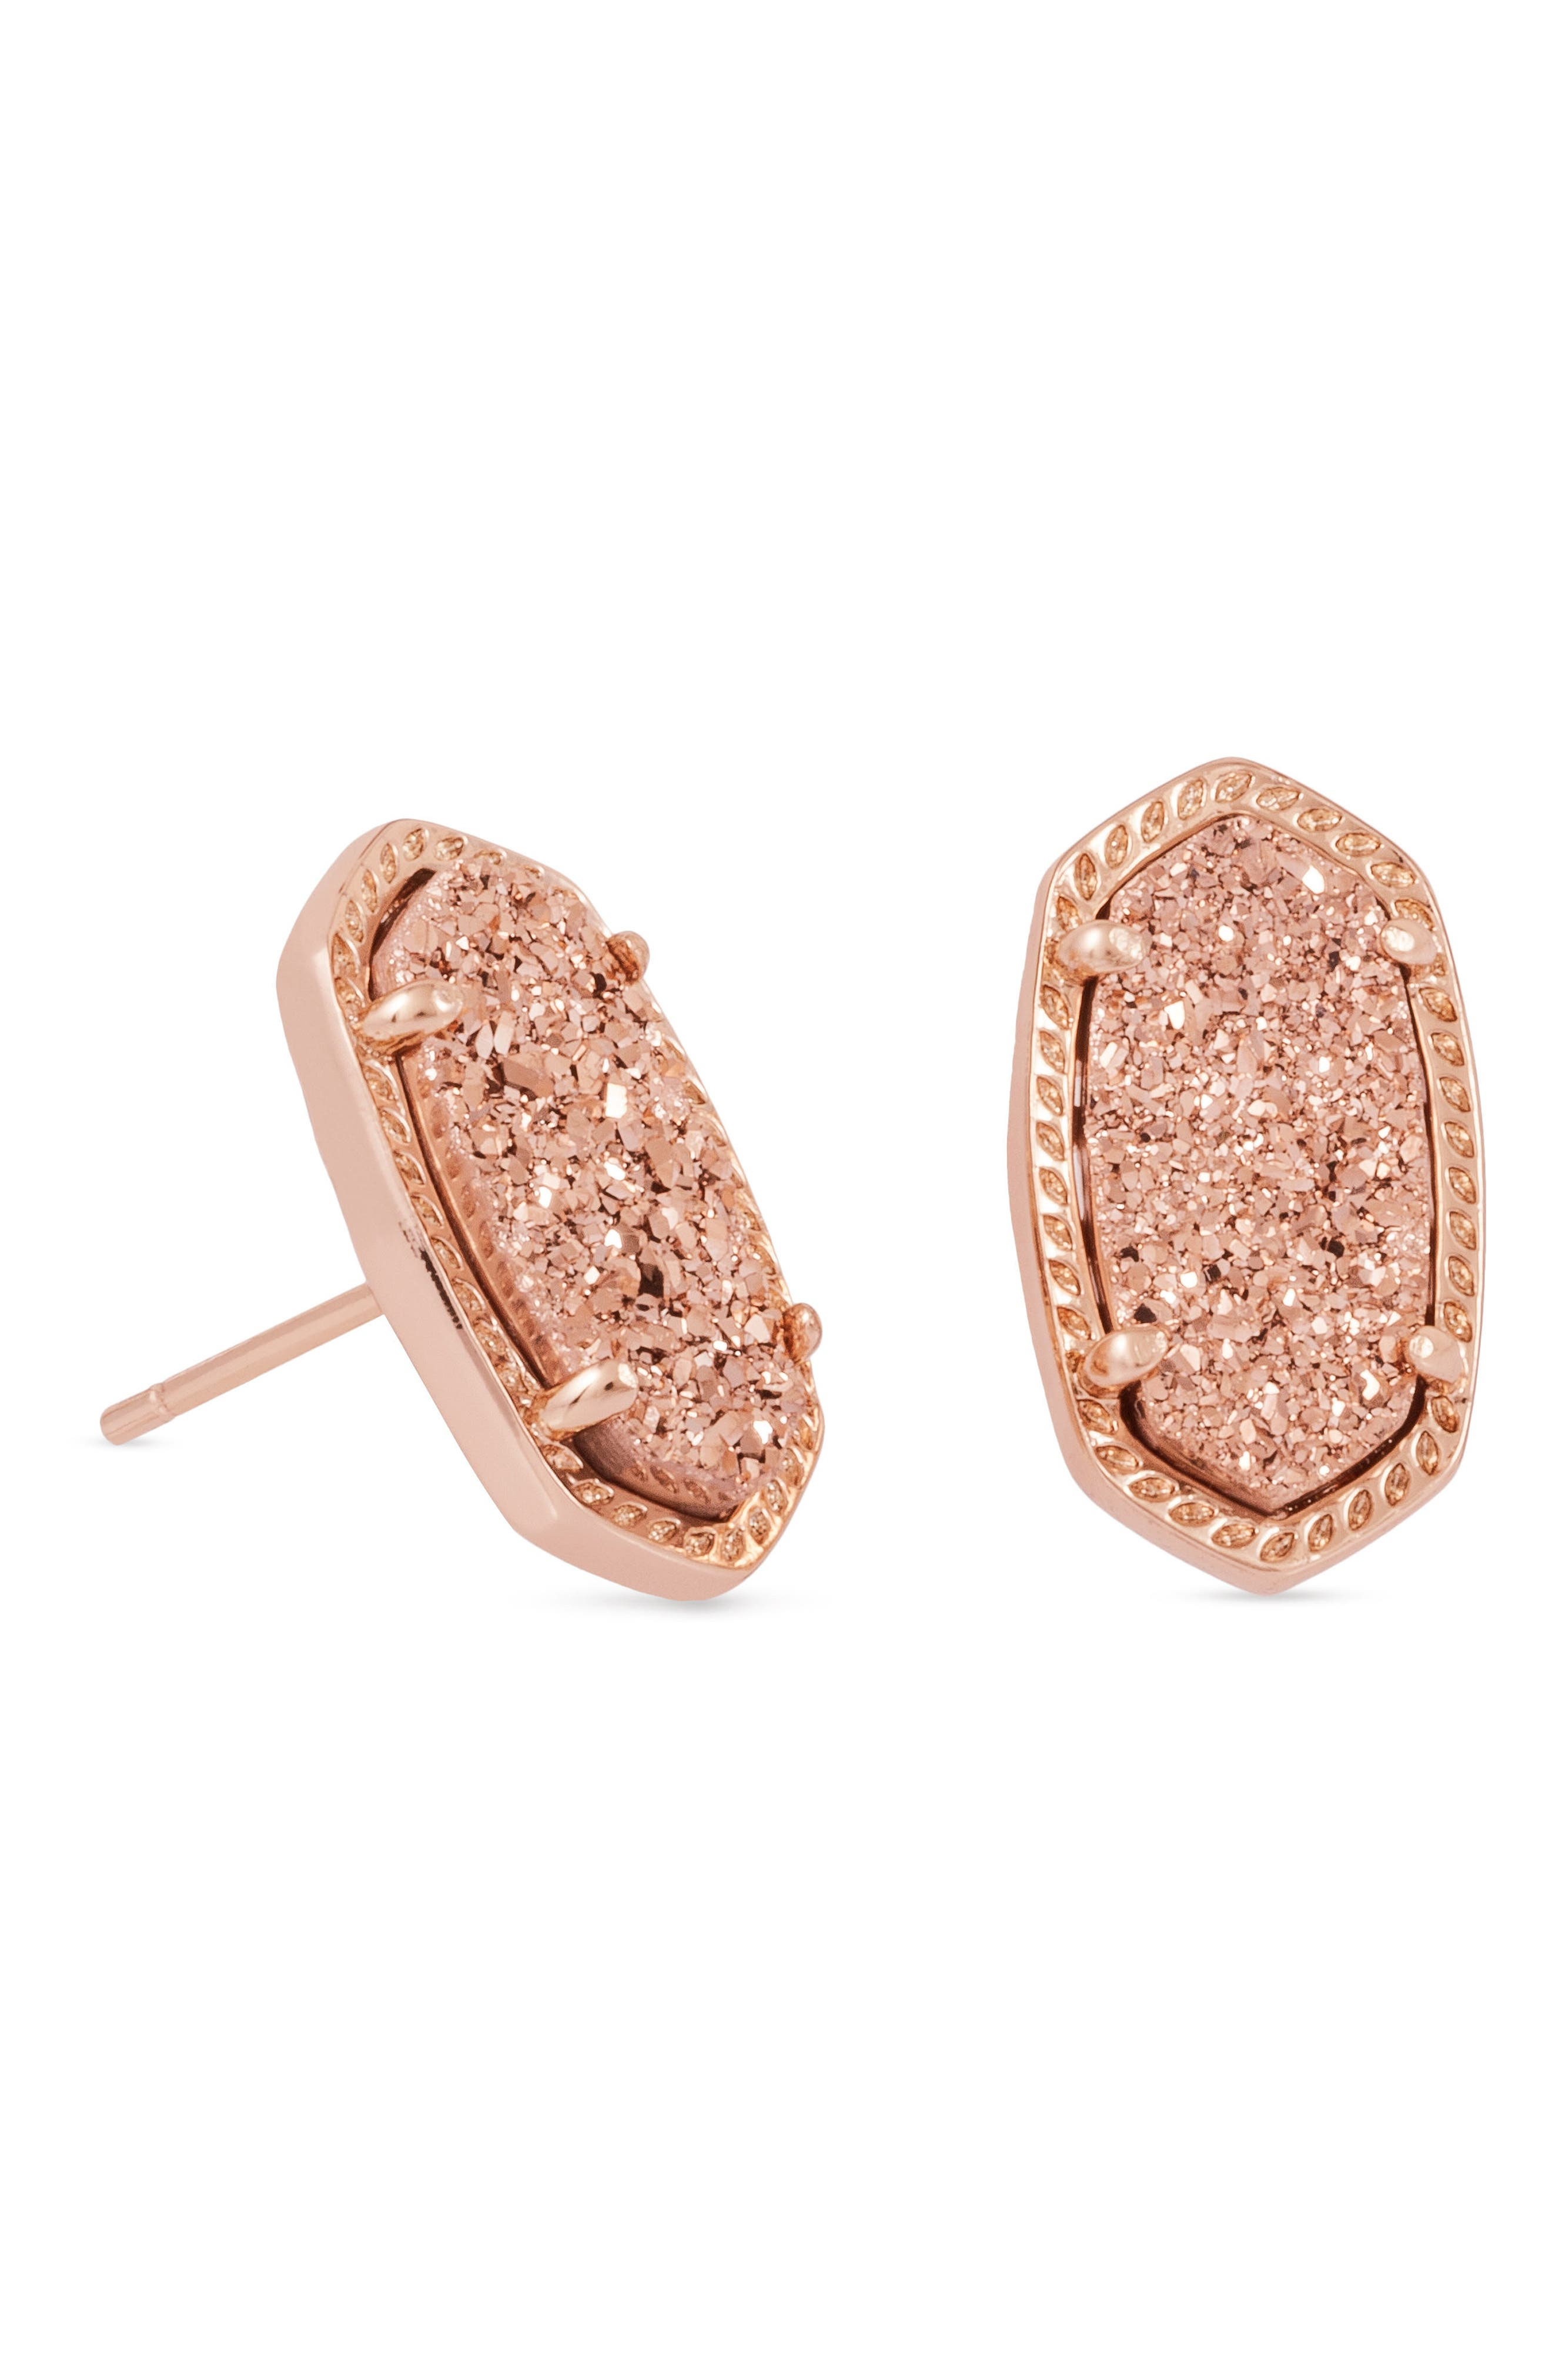 Ellie Oval Stone Stud Earrings,                             Main thumbnail 1, color,                             Rose Gold Drusy/ Rose Gold